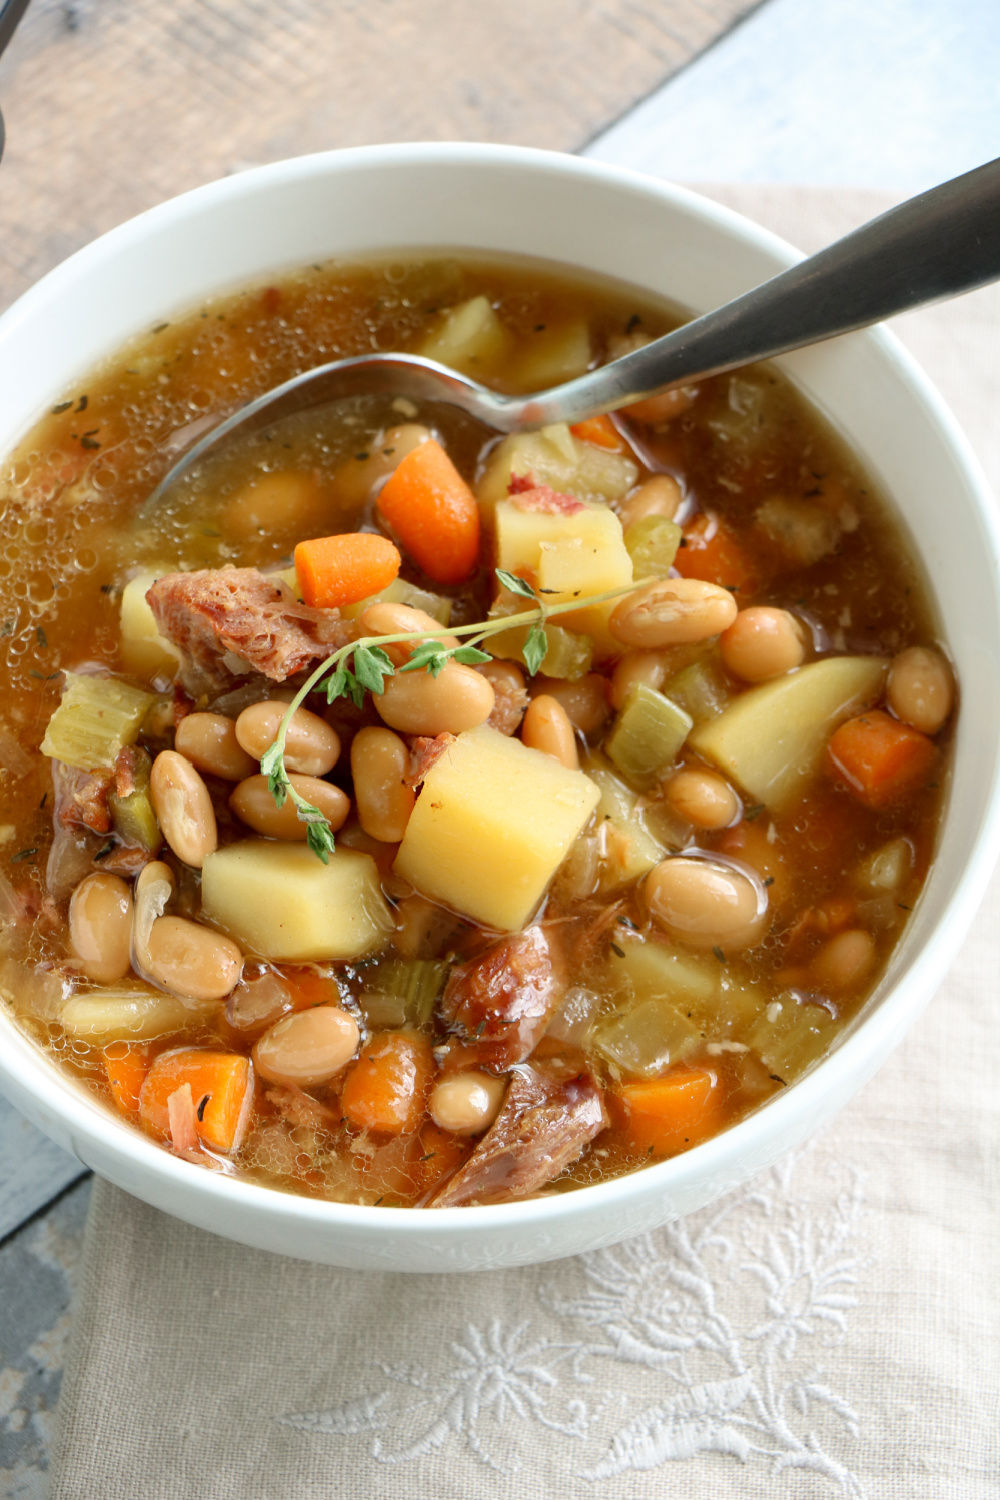 ham bone soup in a white bowl with a spoon